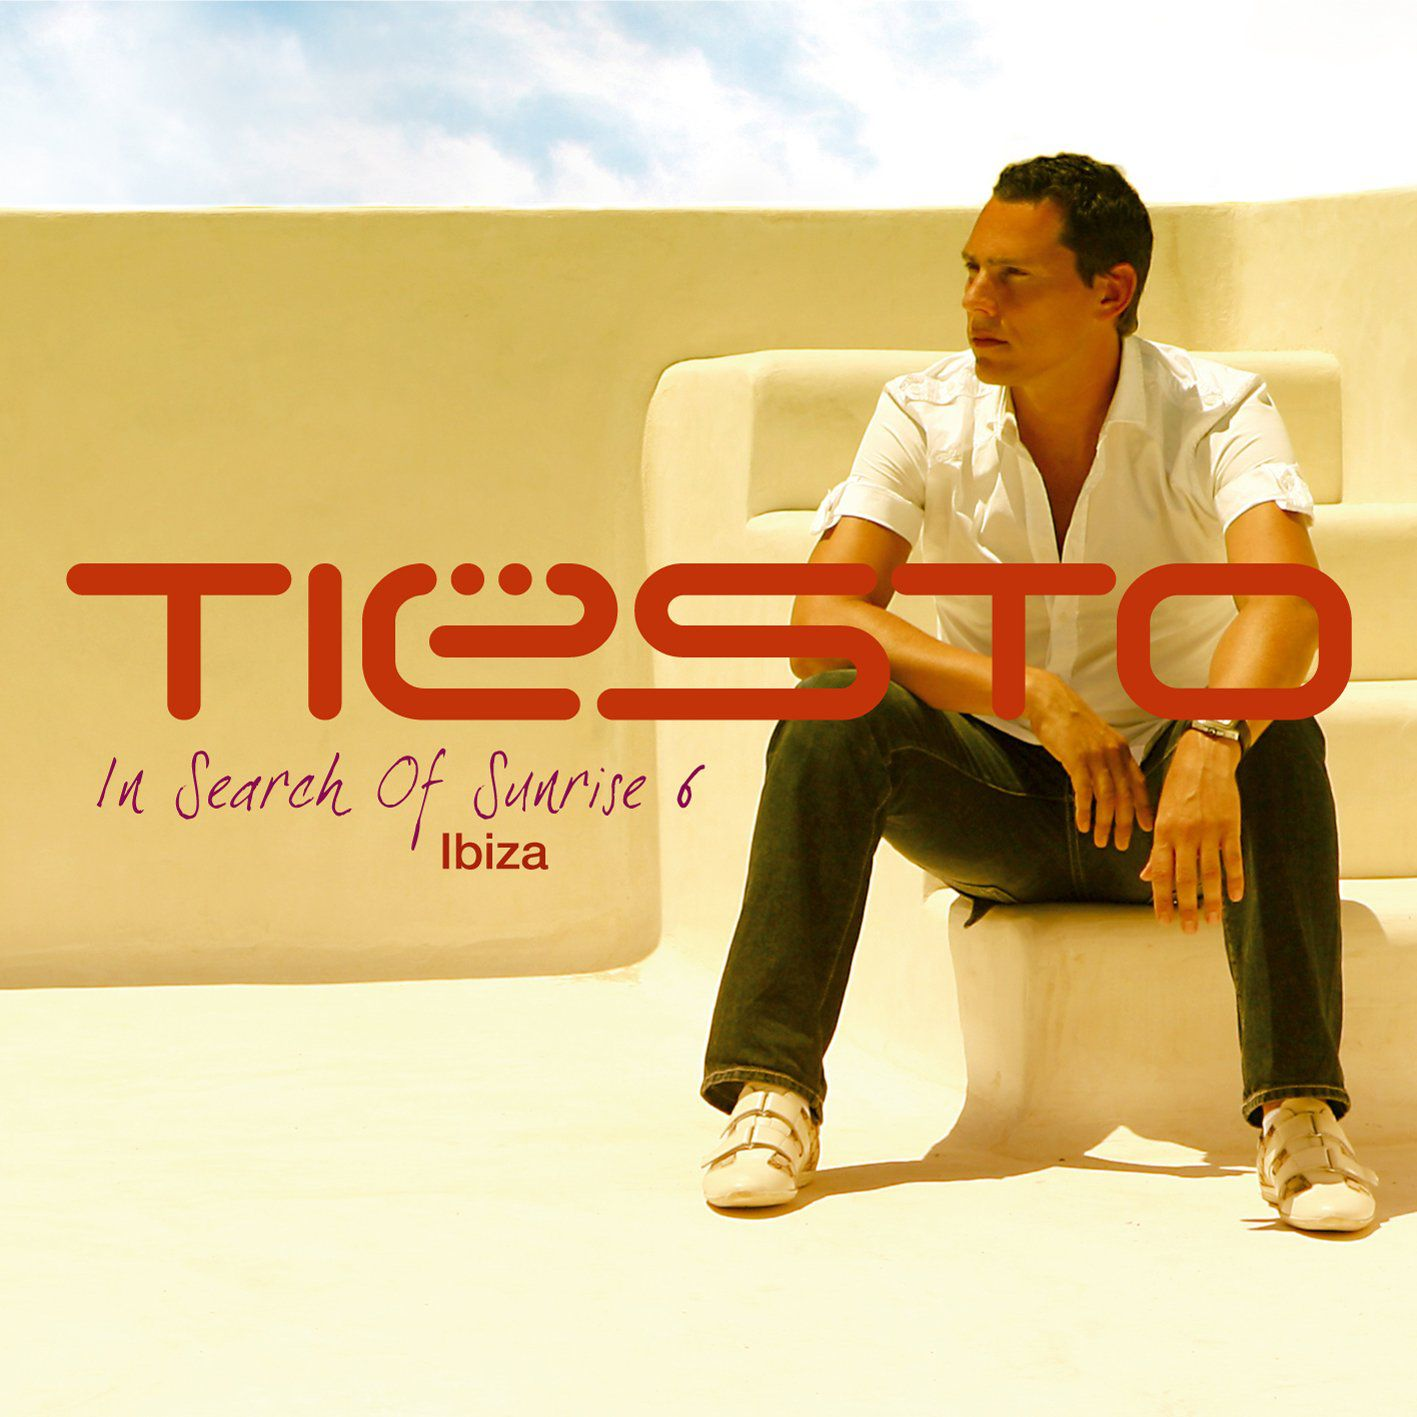 Tiësto compilation: In Search of Sunrise 6 mix, tracklist, album, track, sigle, remix, isos 6